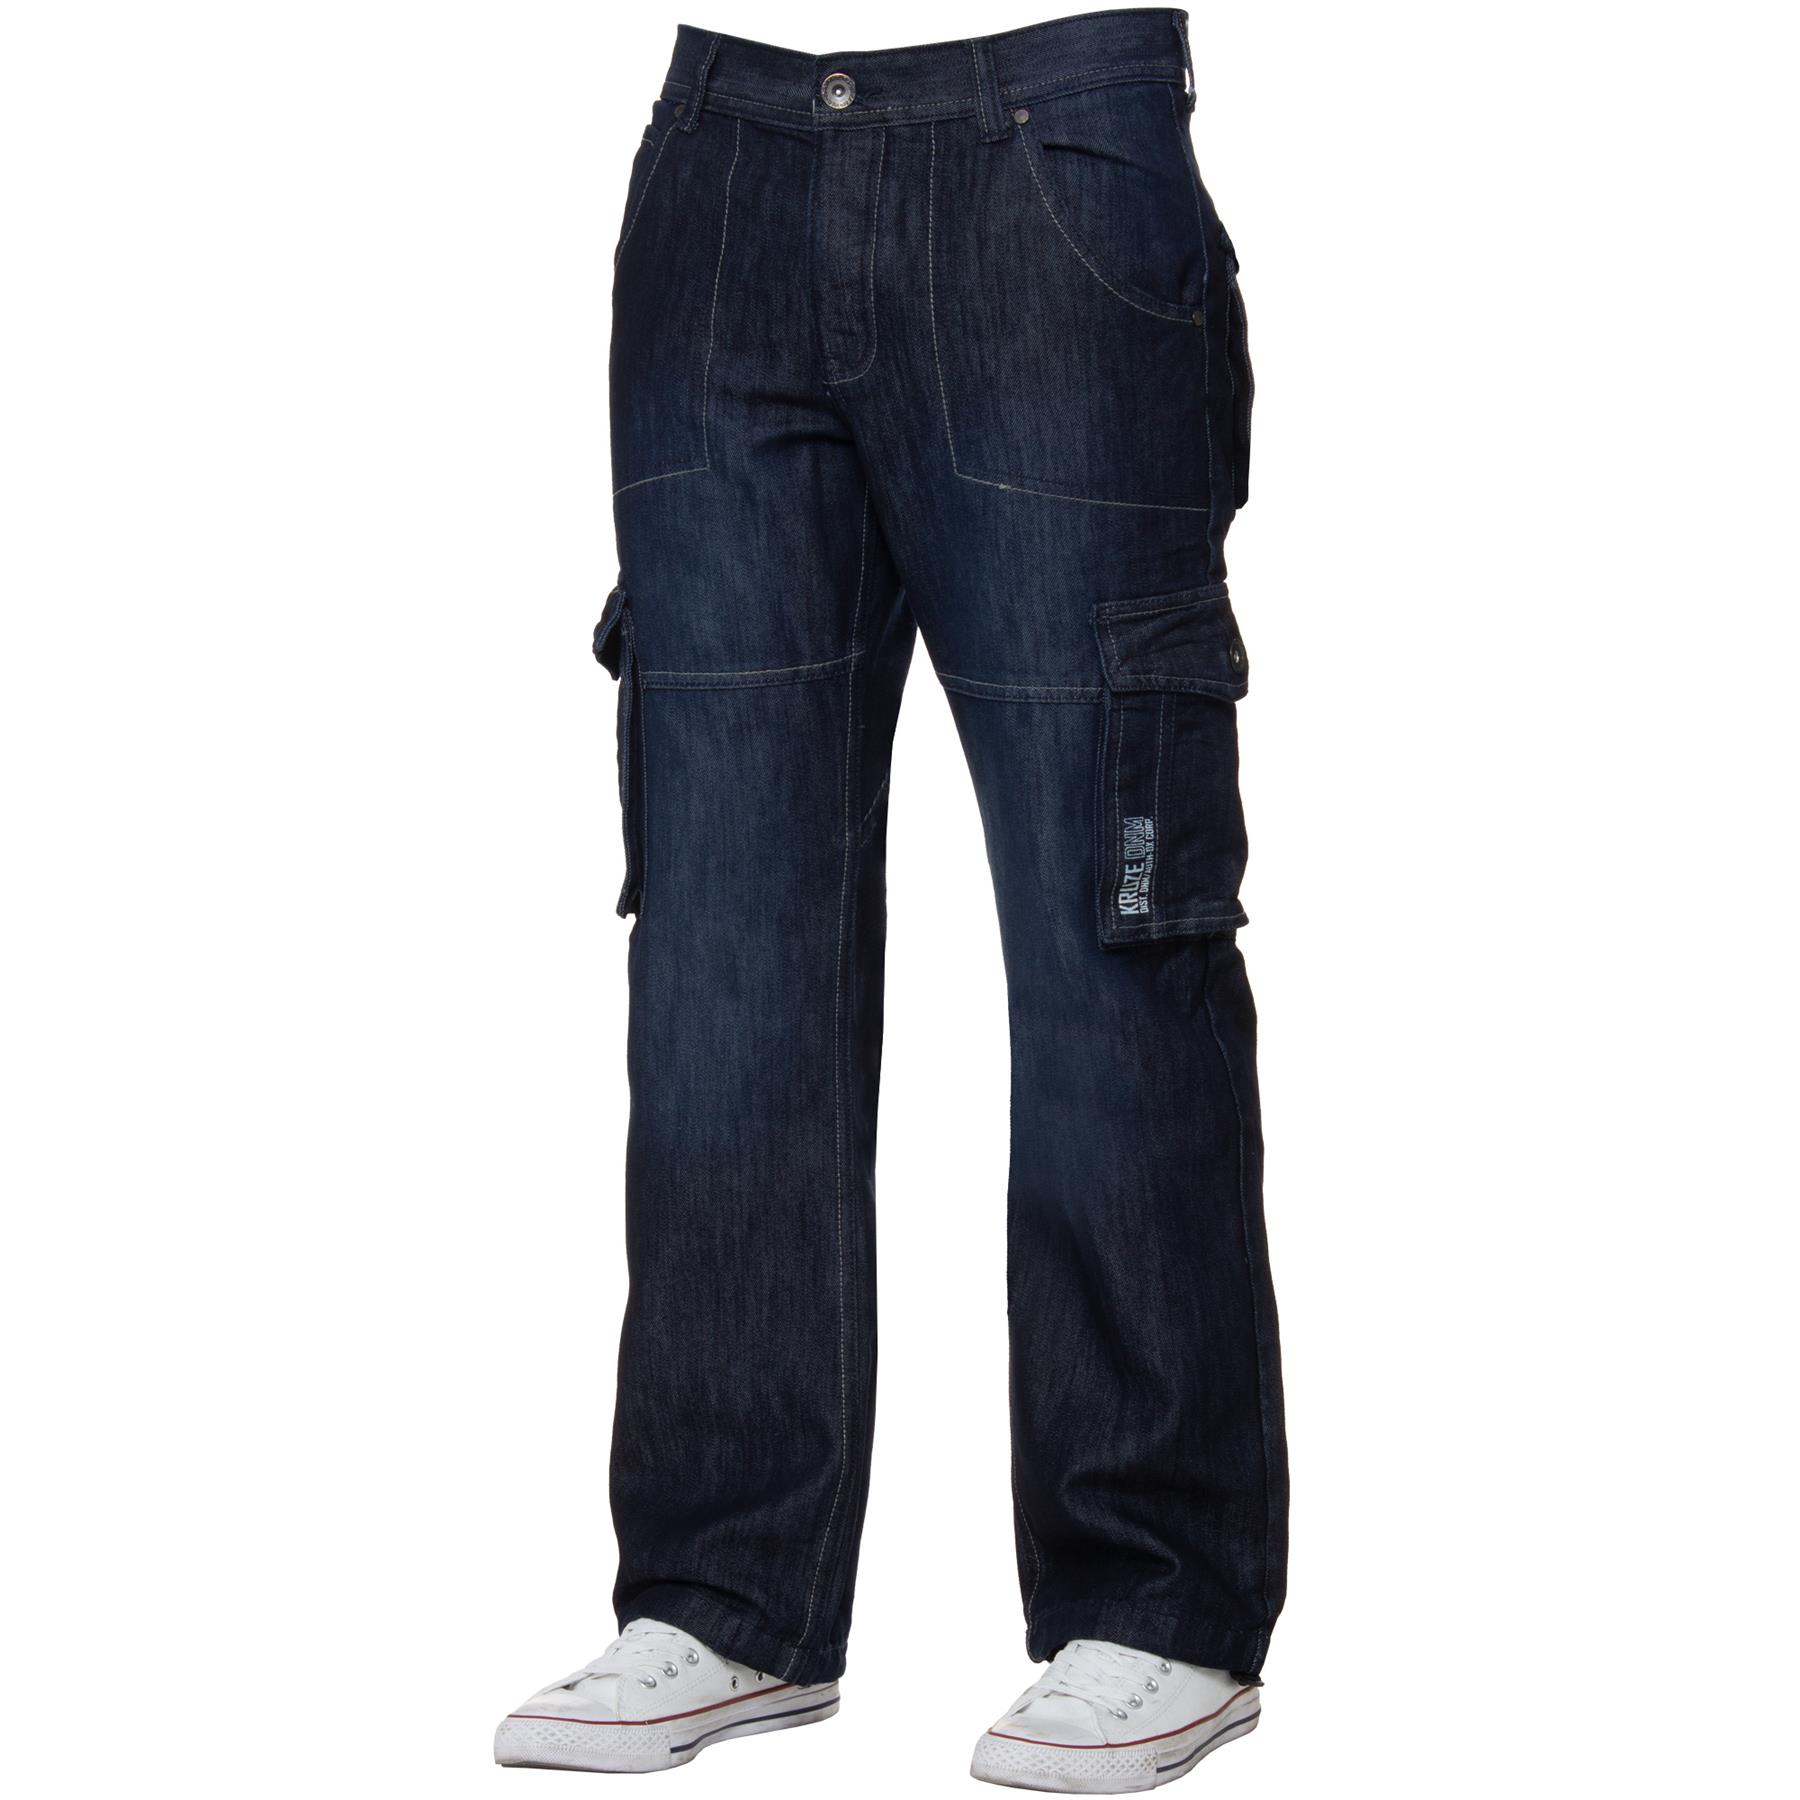 Kruze-Mens-Cargo-Combat-Jeans-Casual-Work-Denim-Pants-Big-Tall-All-Waist-Sizes thumbnail 16